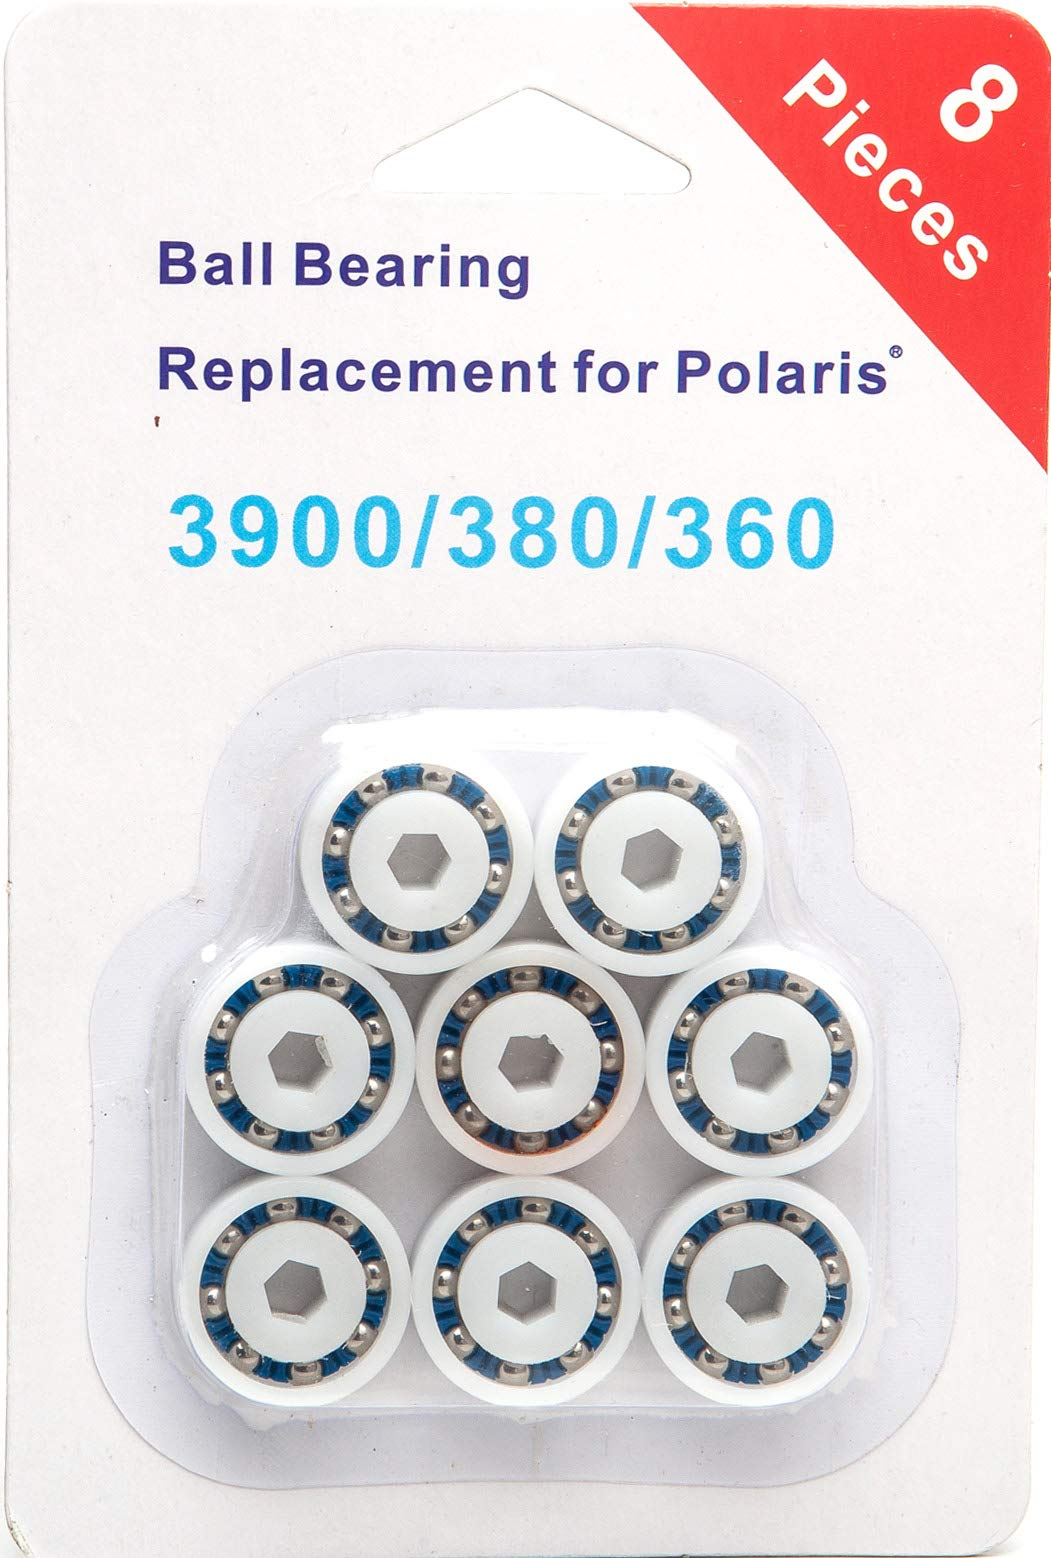 PoolSupplyTown 8 Pack Wheel Ball Bearing Replacement for Polaris 360, 380, 3900 Sport, ATV Pool Cleaners Part No. 9-100-1108 by ATIE